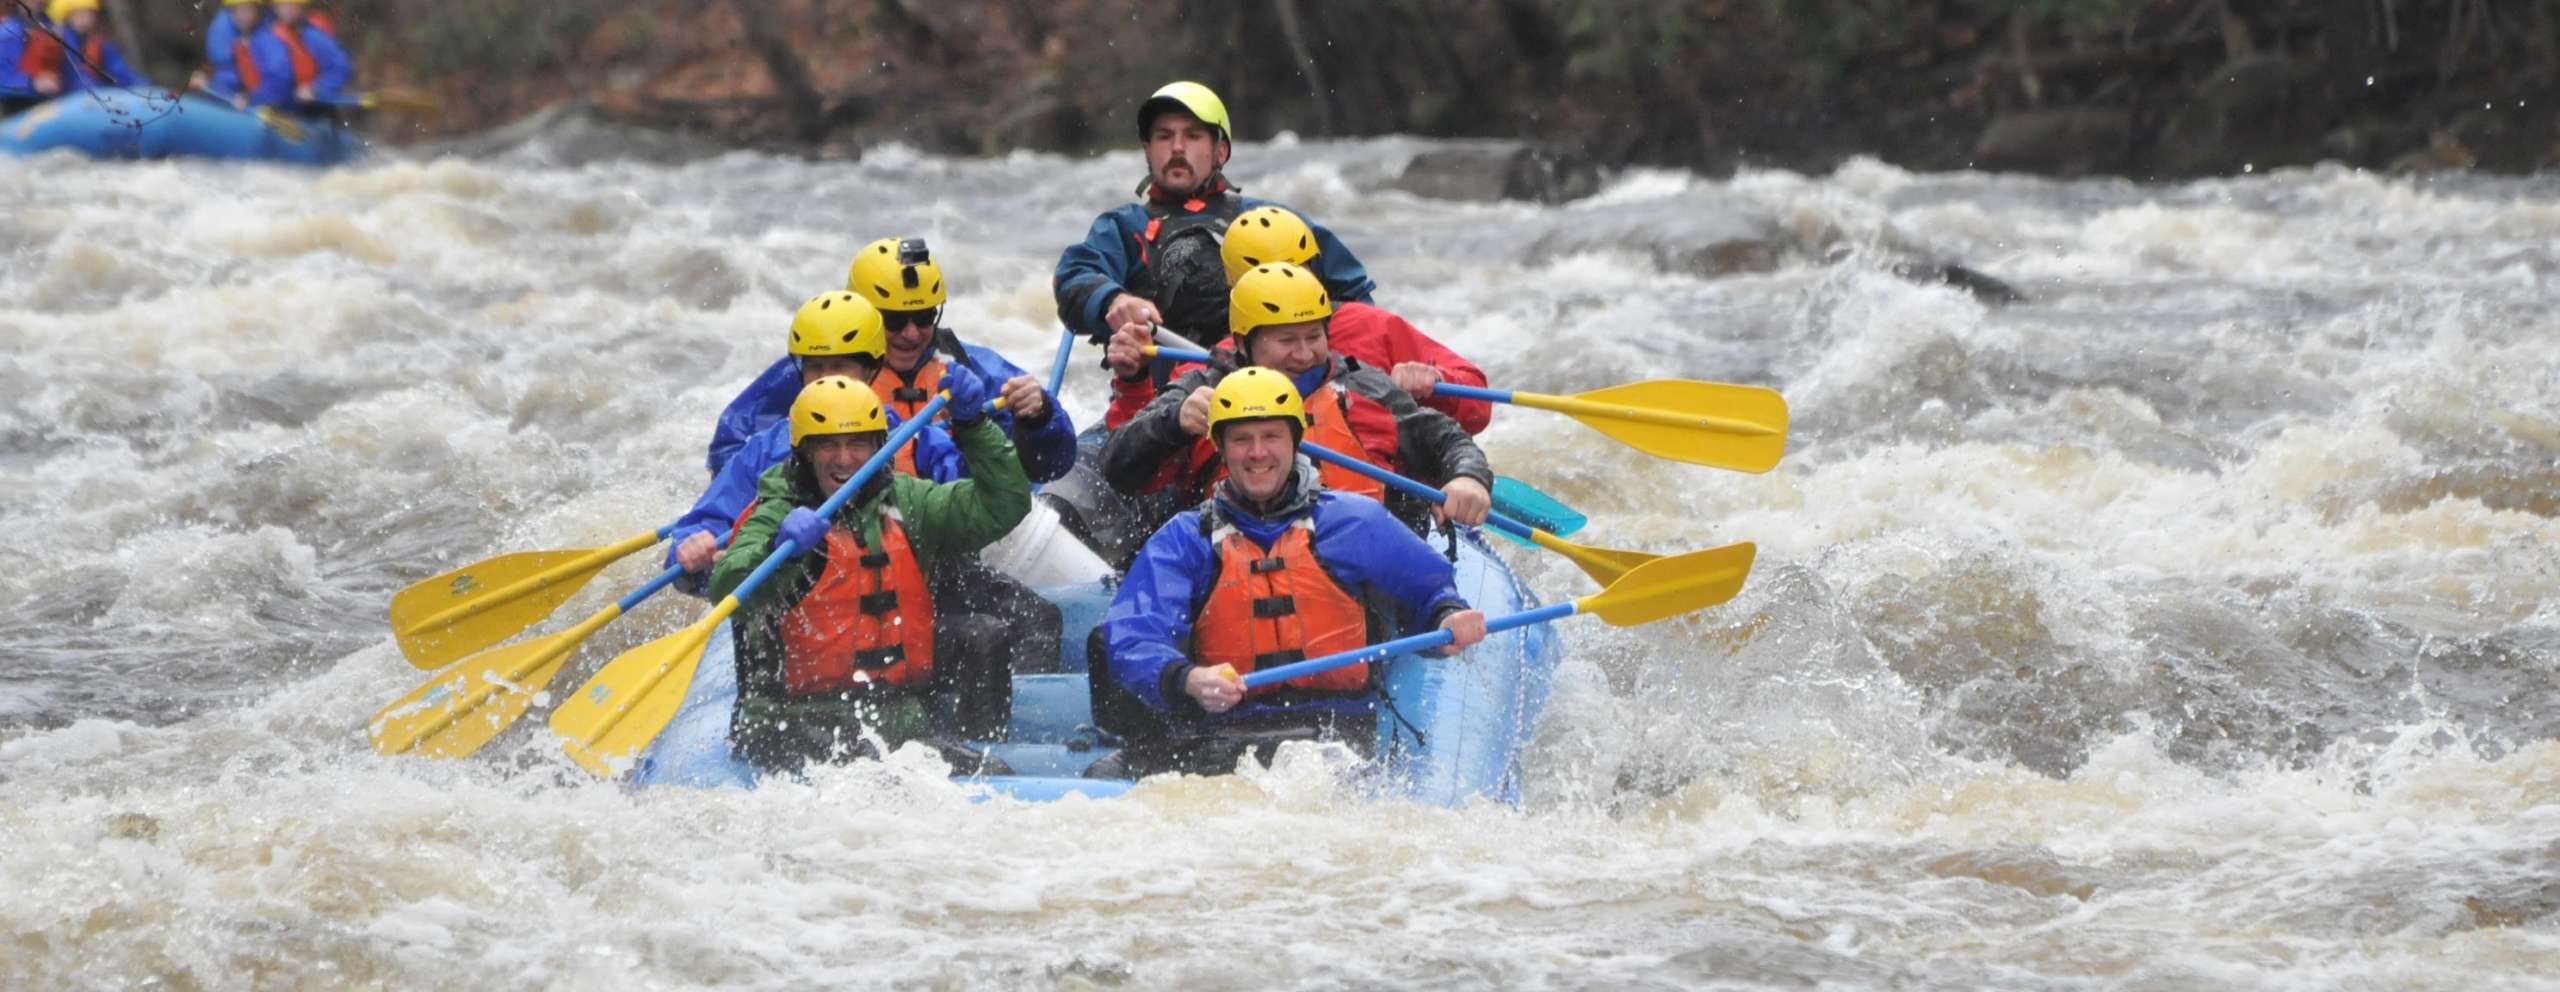 Group navigating rapids